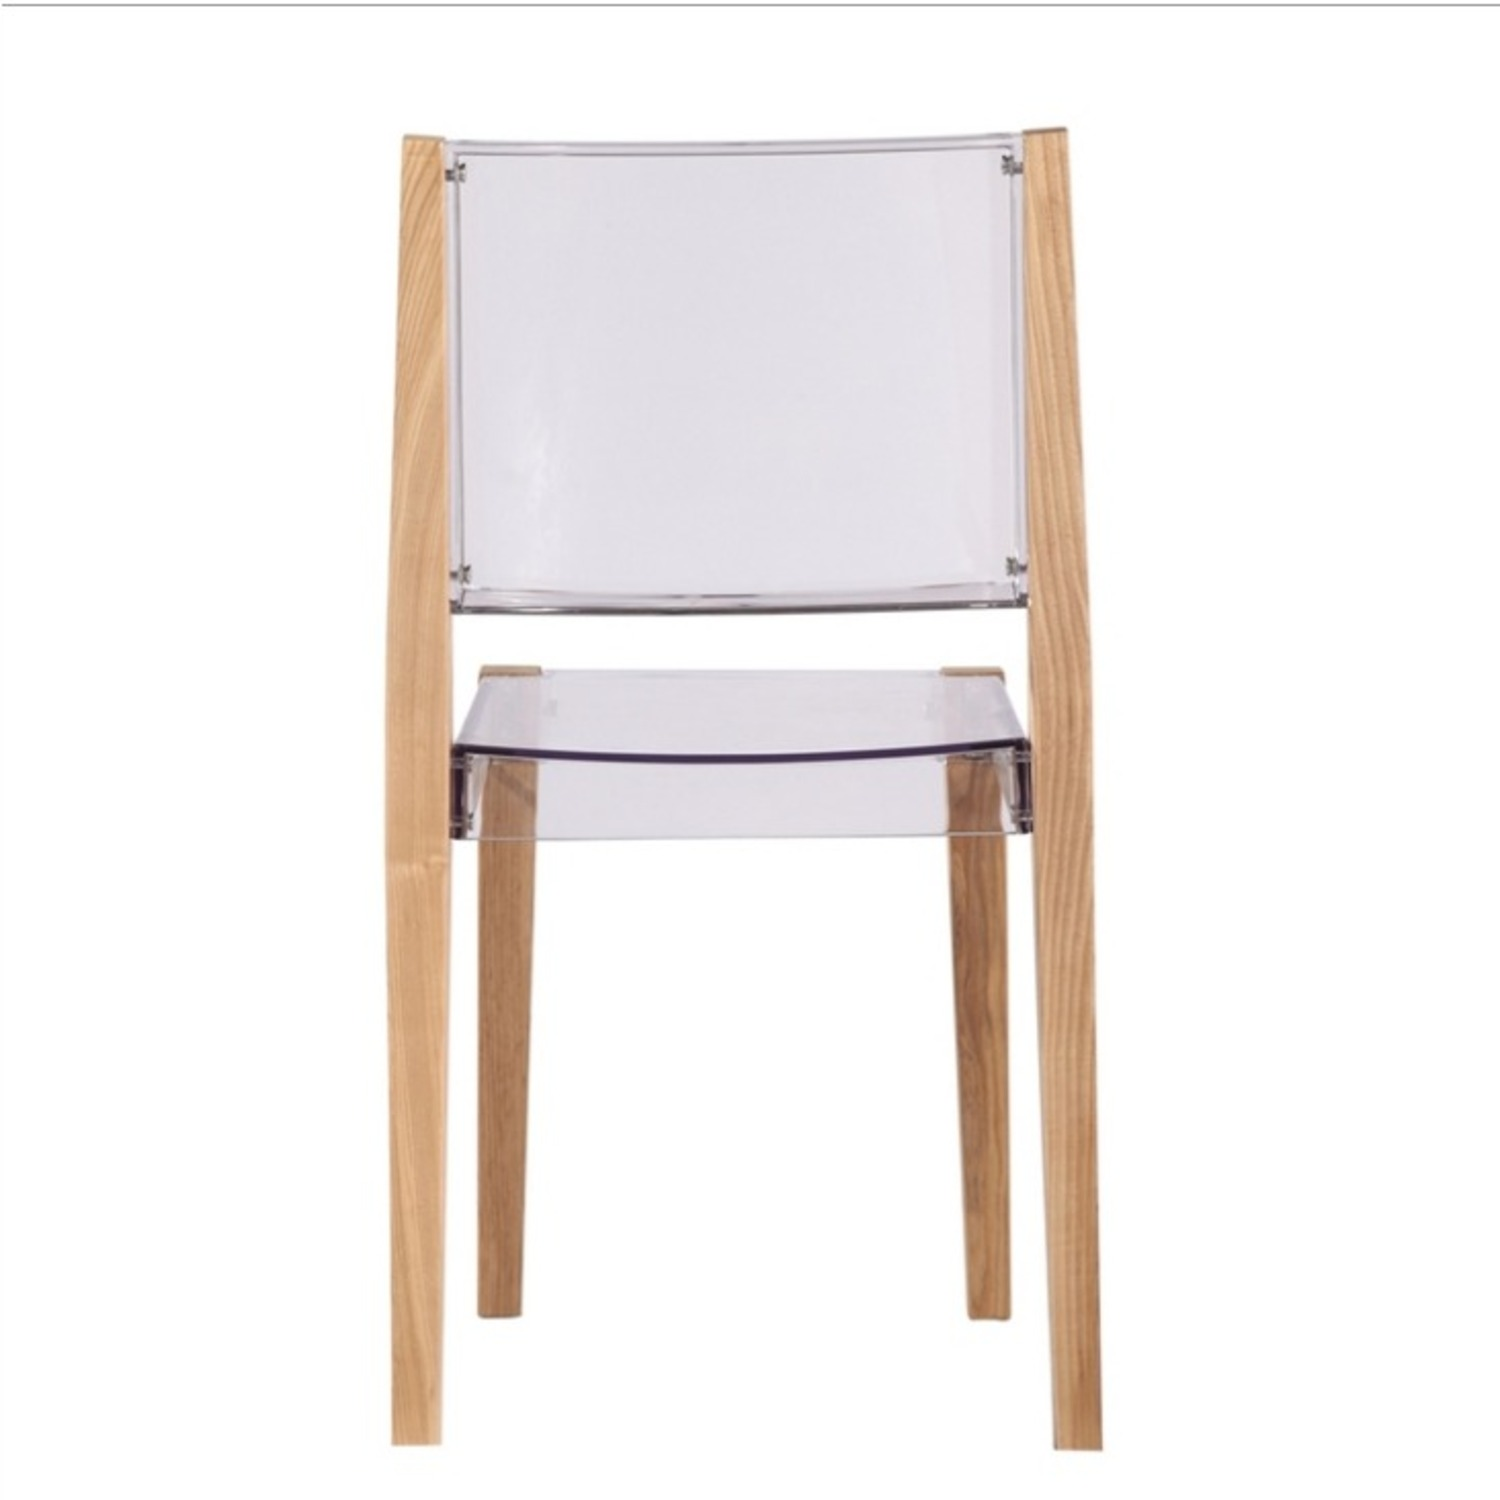 Side Chair In Natural Wood & Transparent Seat - image-2